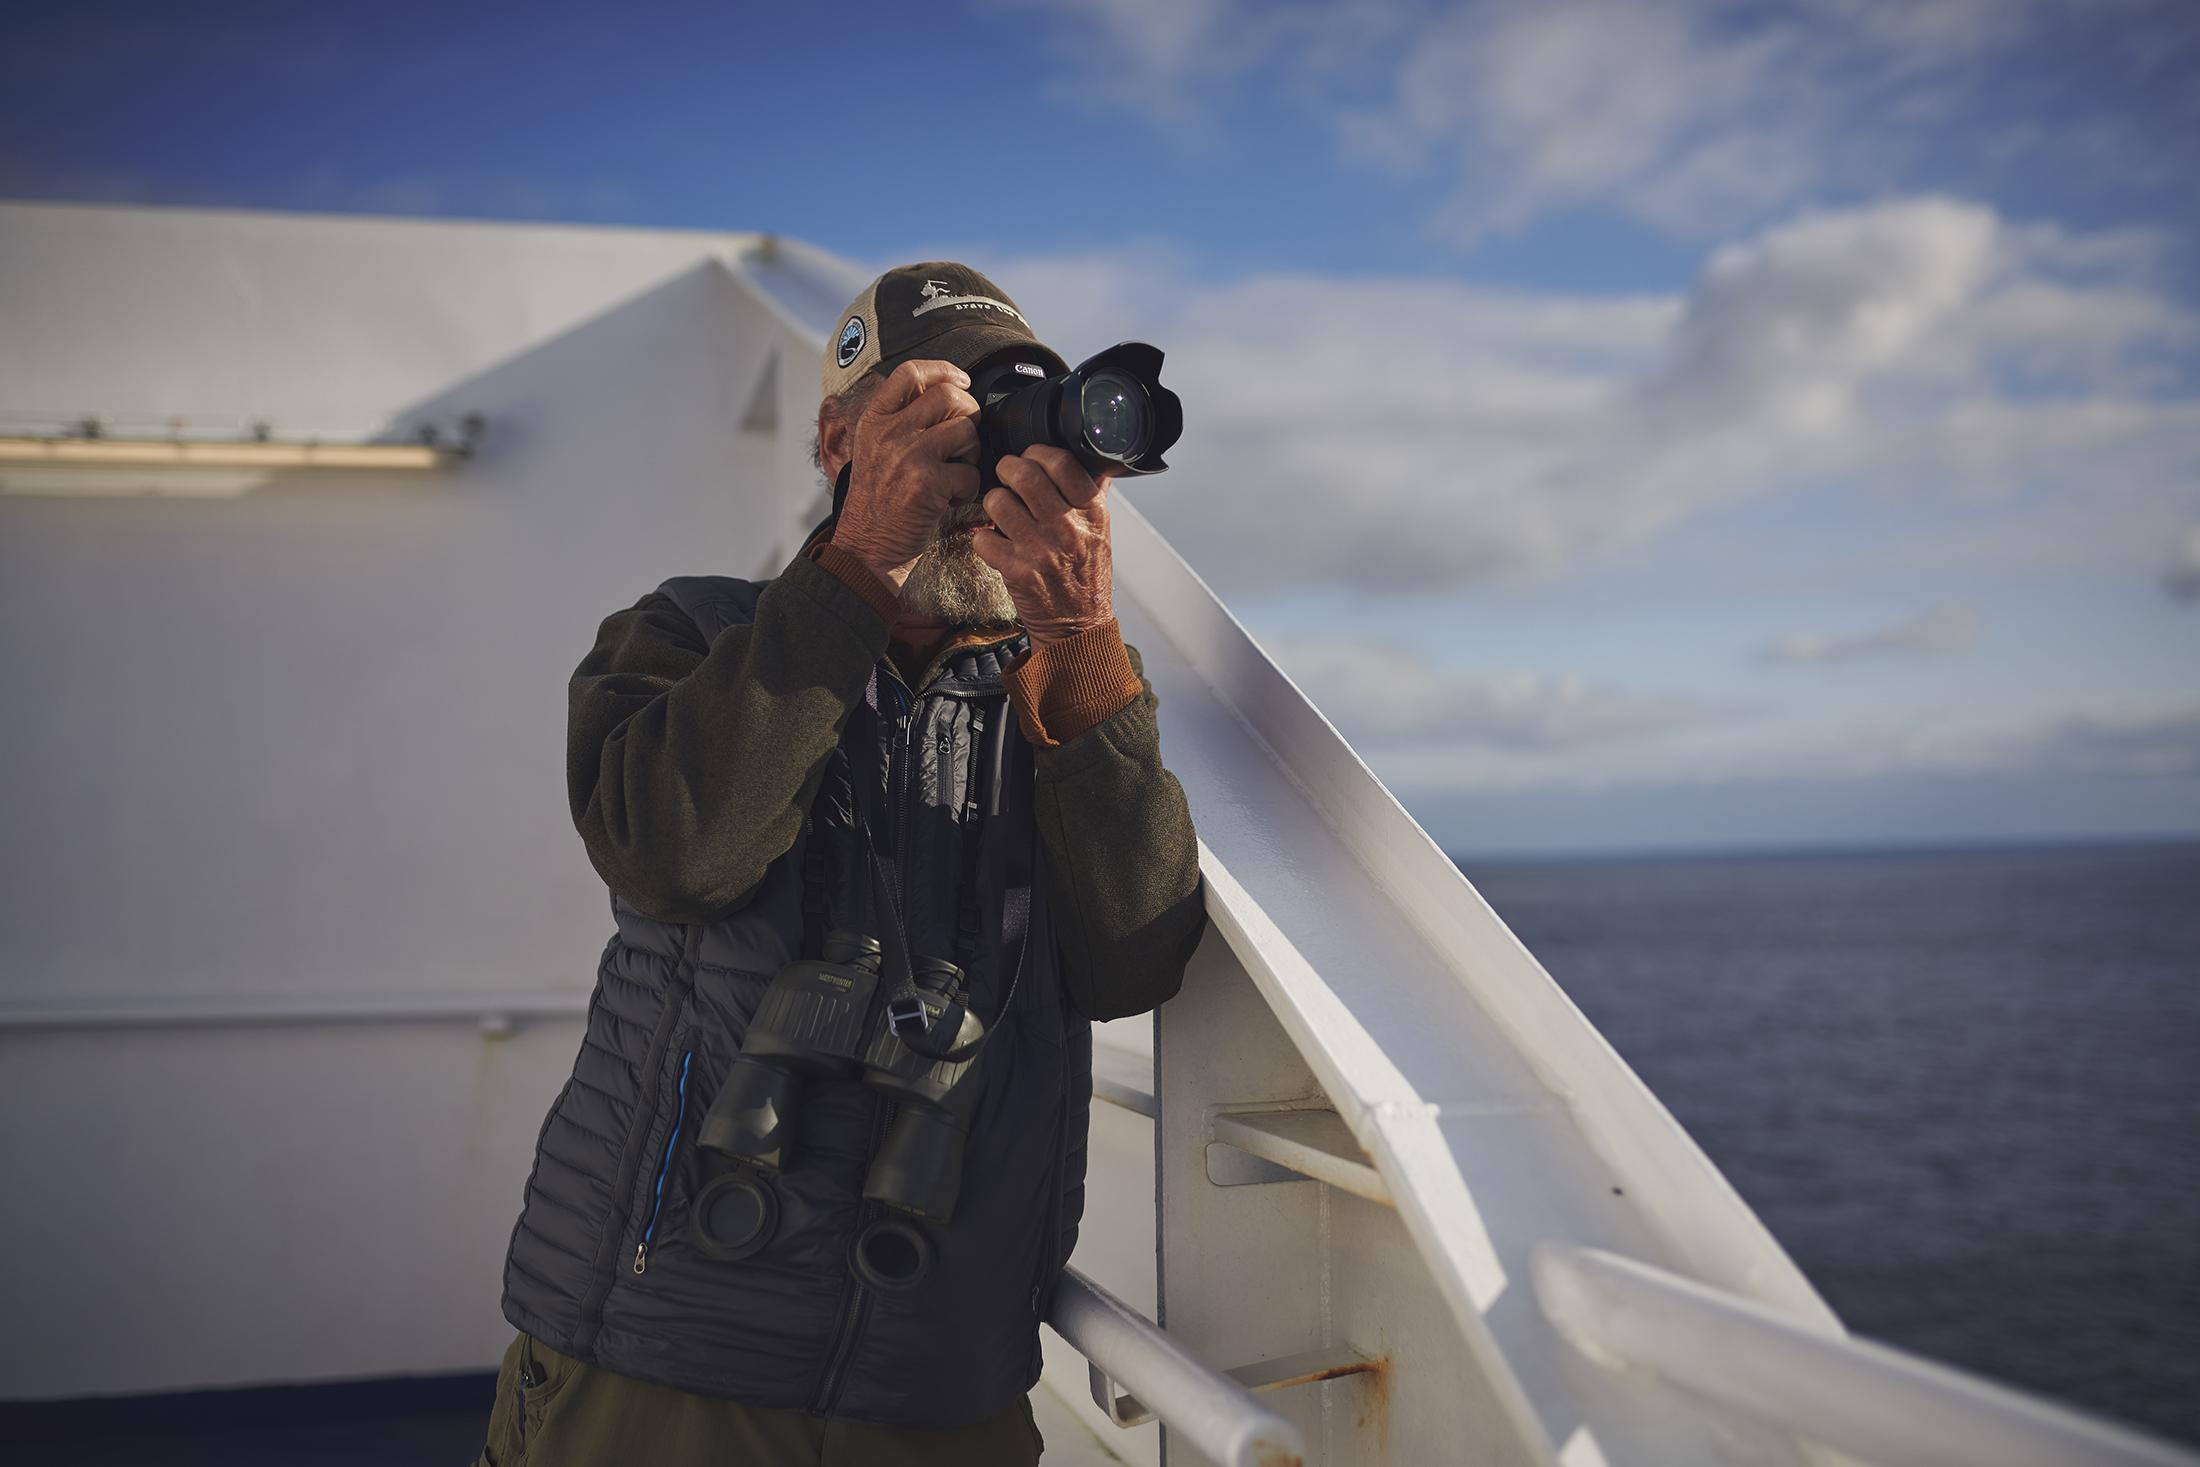 Marine Atlantic Passenger Taking Photos